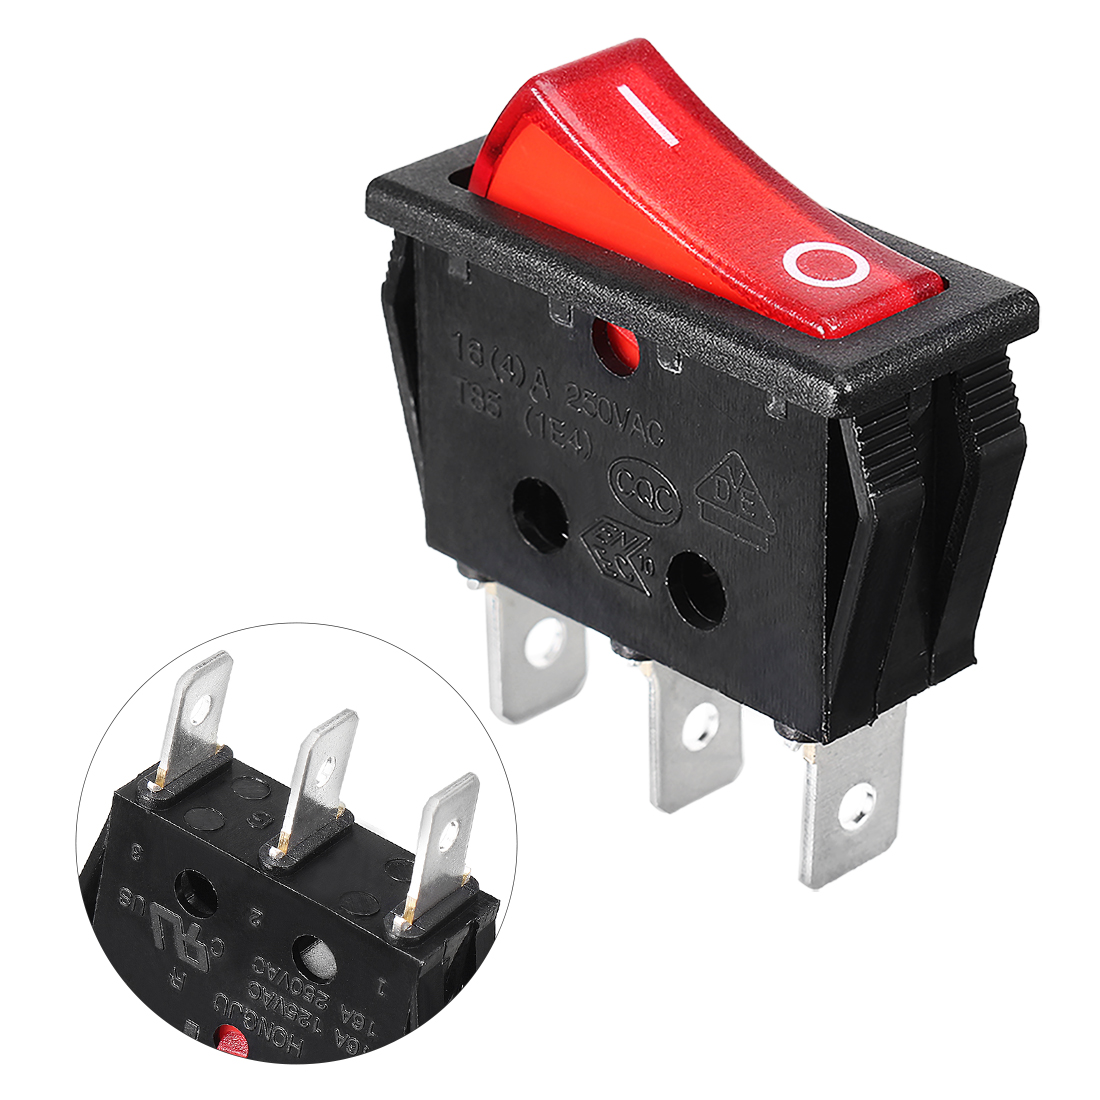 Red Illuminated Light On/Off SPST Boat Rocker Switch 16A/250V AC